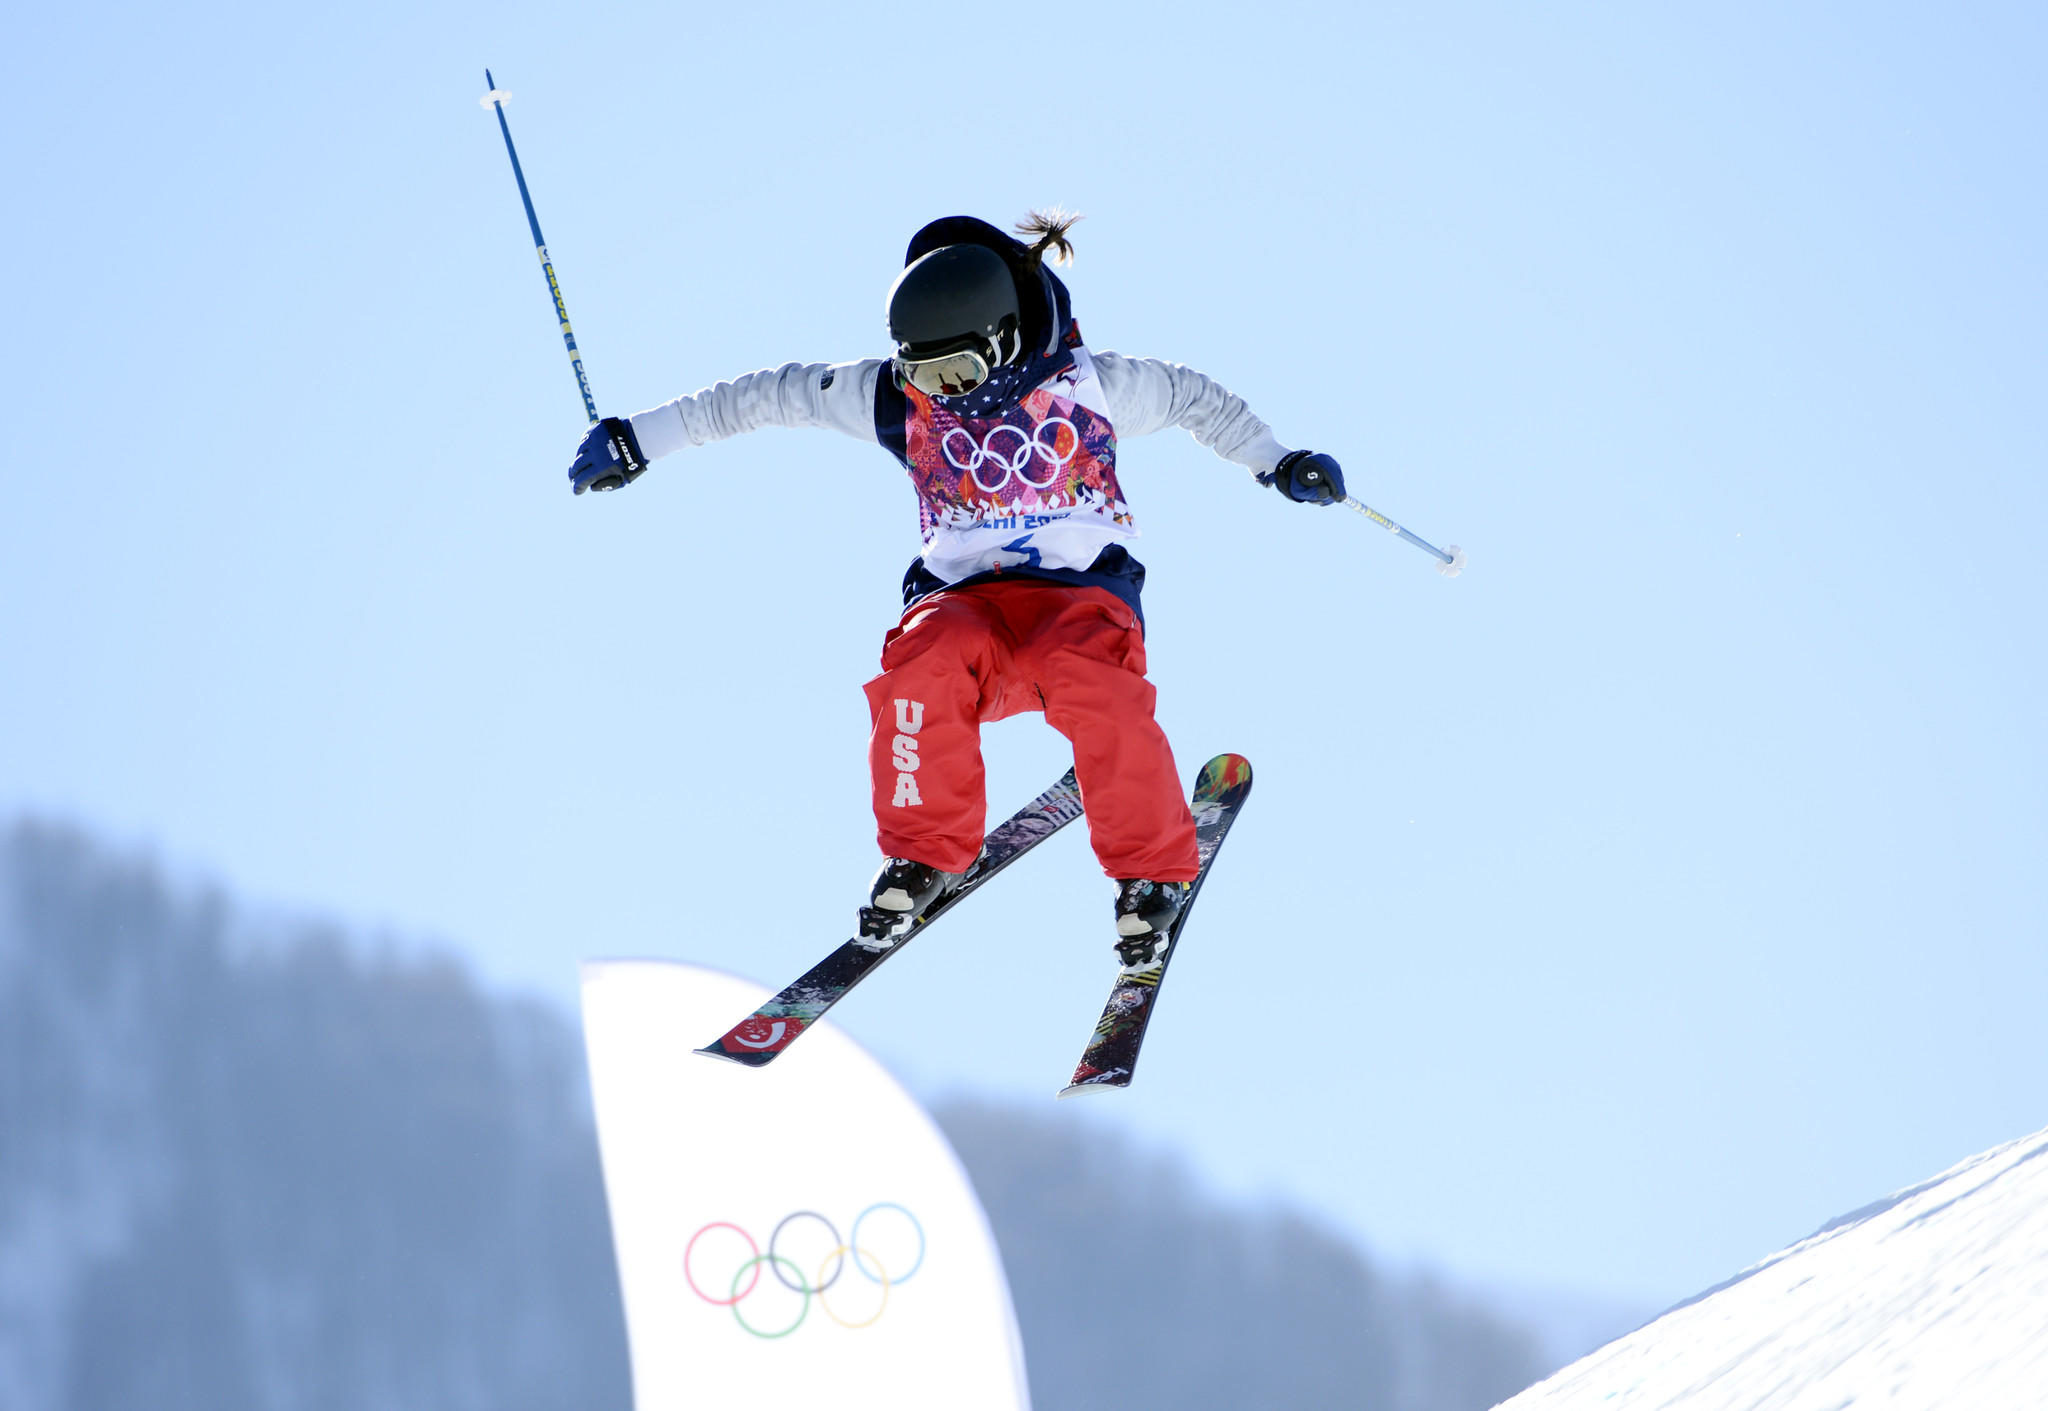 Keri Herman practices for slopestyle skiing during media day prior to the Sochi 2014 Olympic Winter Games at Rosa Khutor Extreme Park. (Jack Gruber/USA TODAY Sports Photo)